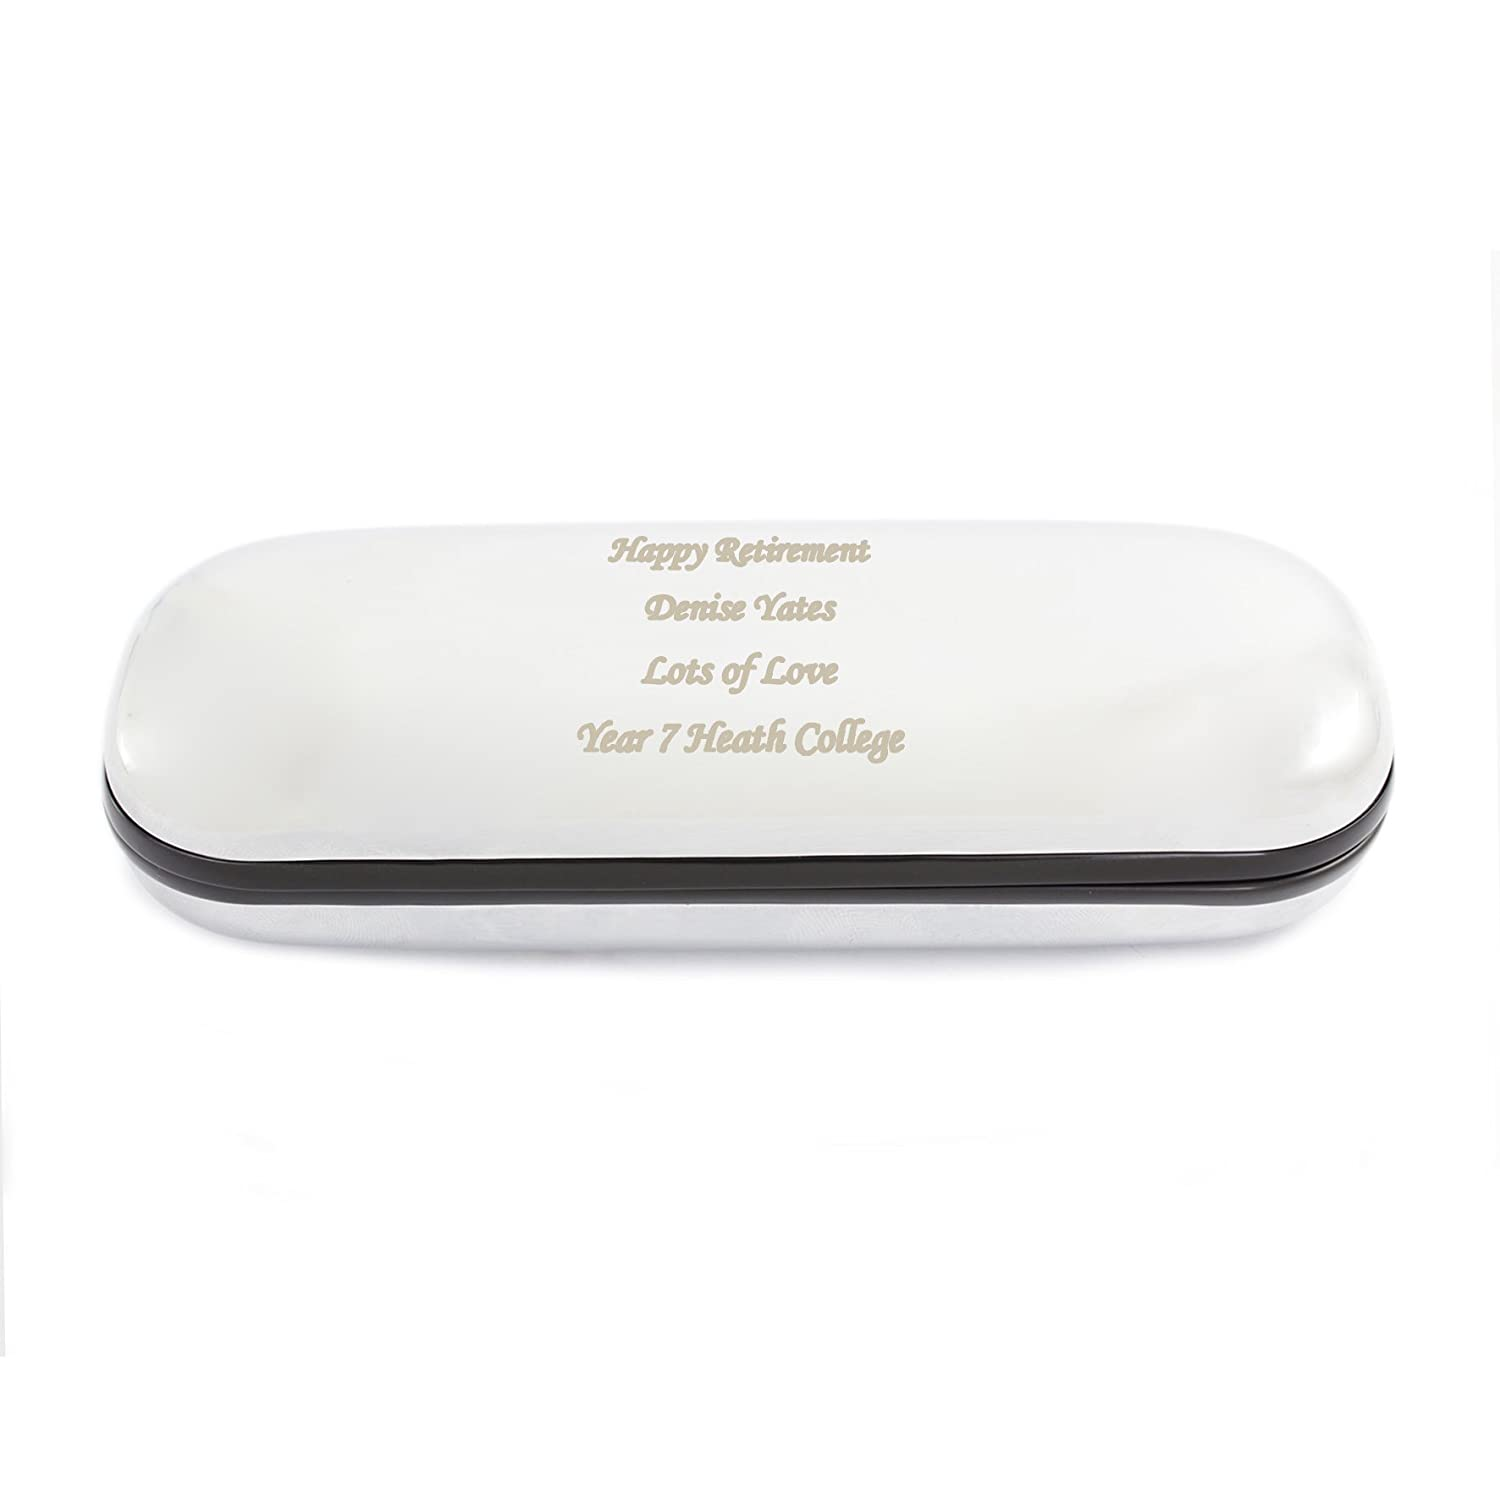 Chrome Finish Glasses Case Zaph Chancery -FREE ENGRAVING - Ideal for Christmas, Birthdays, Anniversaries